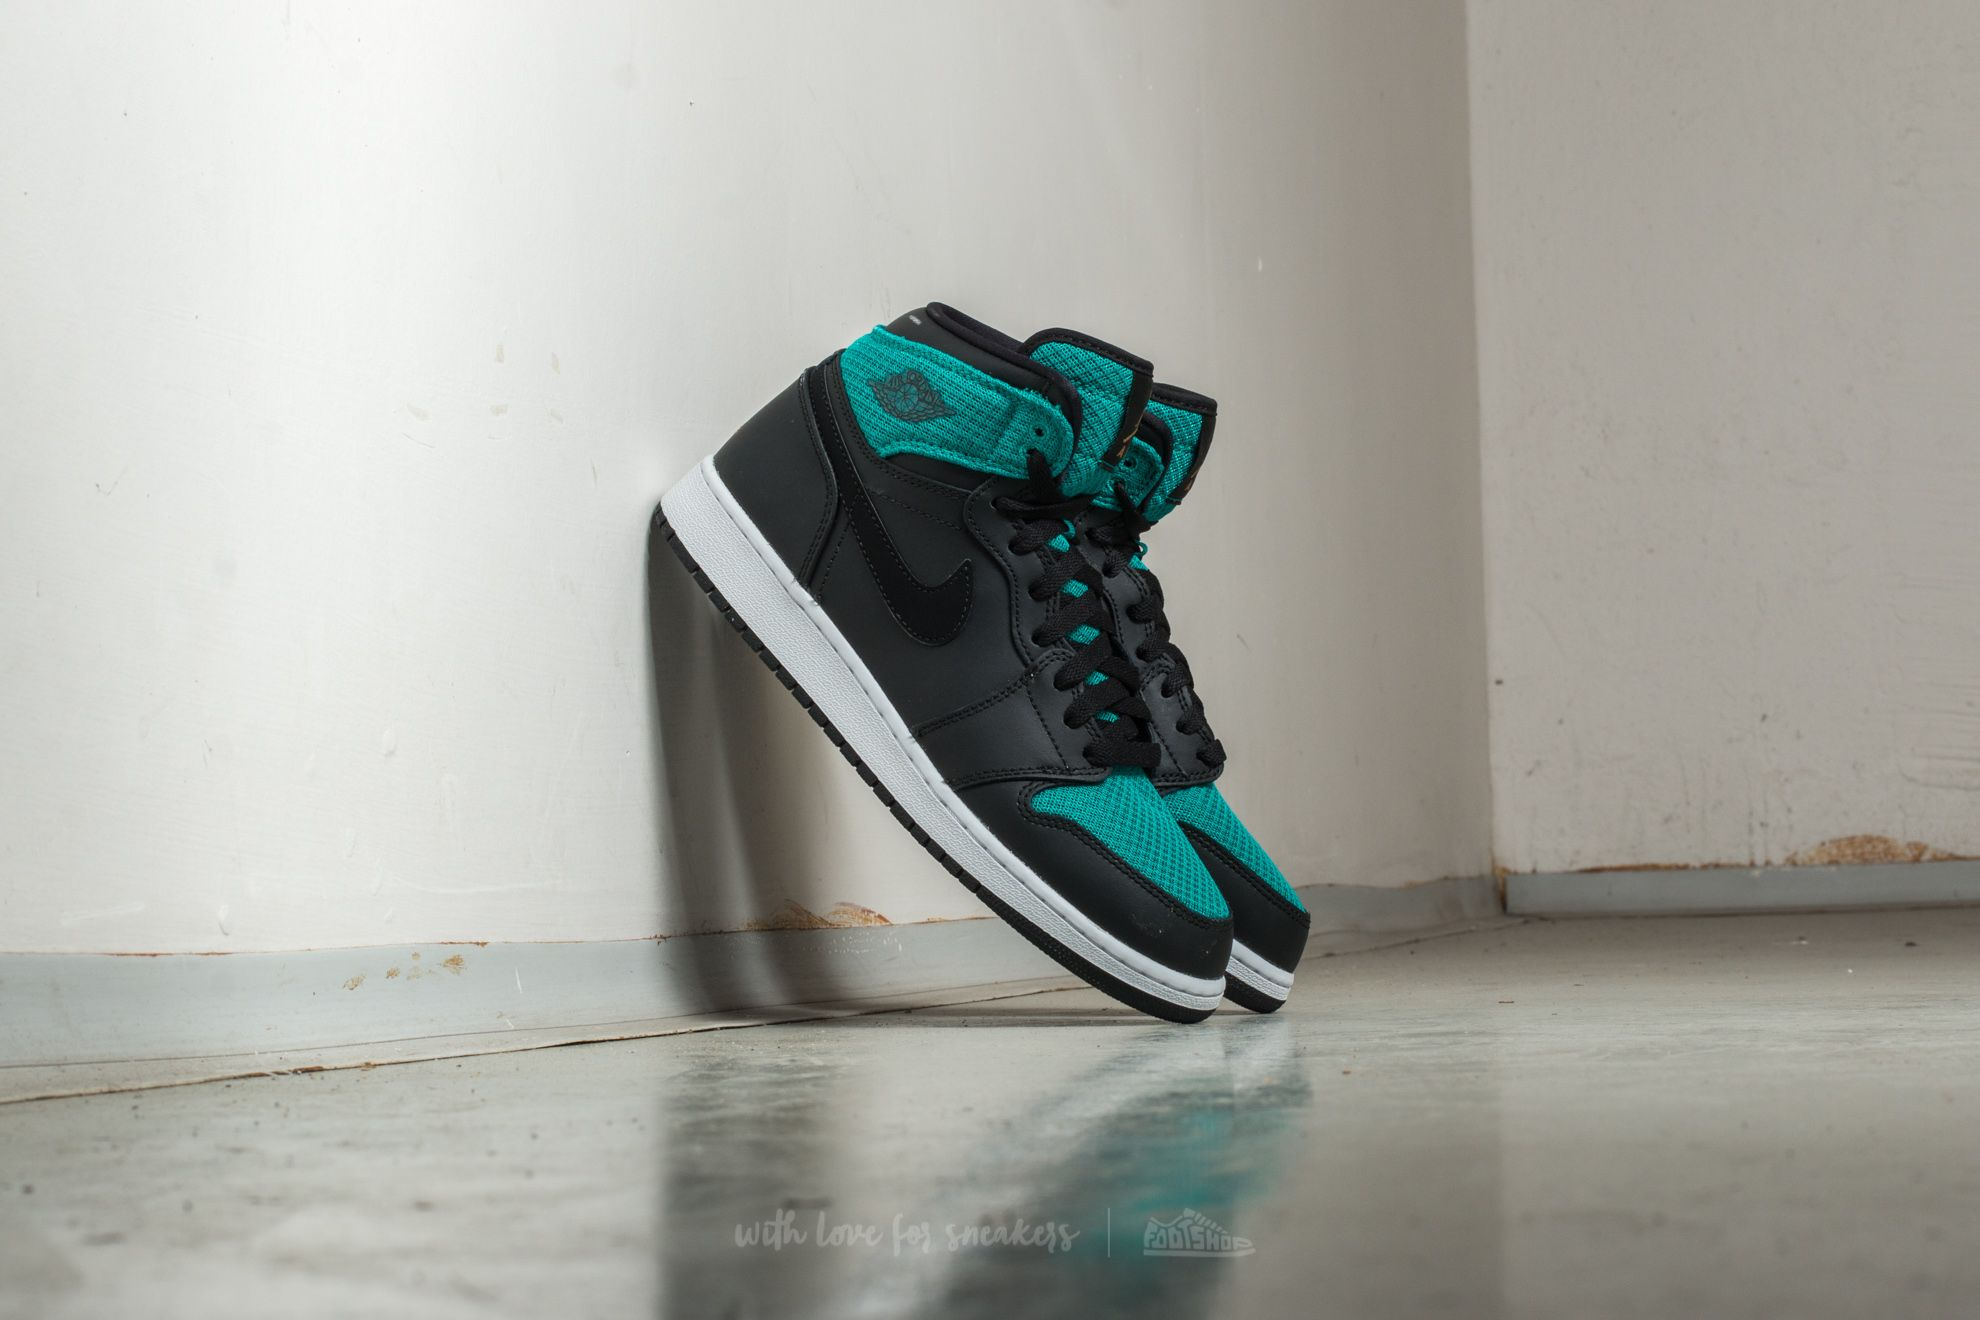 c046d4688818 Air Jordan 1 Retro High (GG) Black/ Metallic Gold-Rio Teal | Footshop